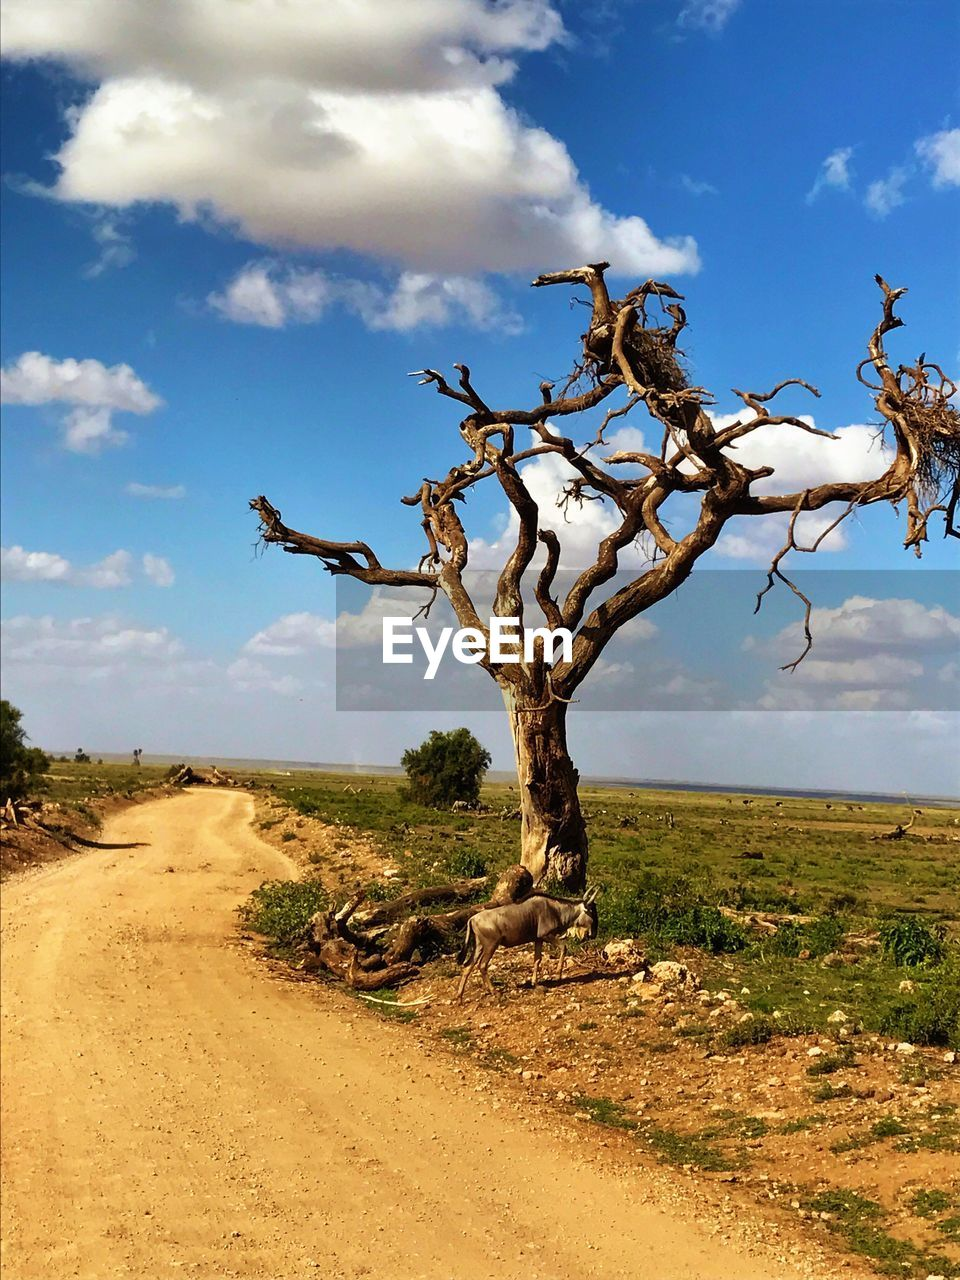 landscape, sky, tree, cloud - sky, nature, tranquility, tranquil scene, scenics, day, outdoors, arid climate, bare tree, plant, no people, beauty in nature, dead tree, desert